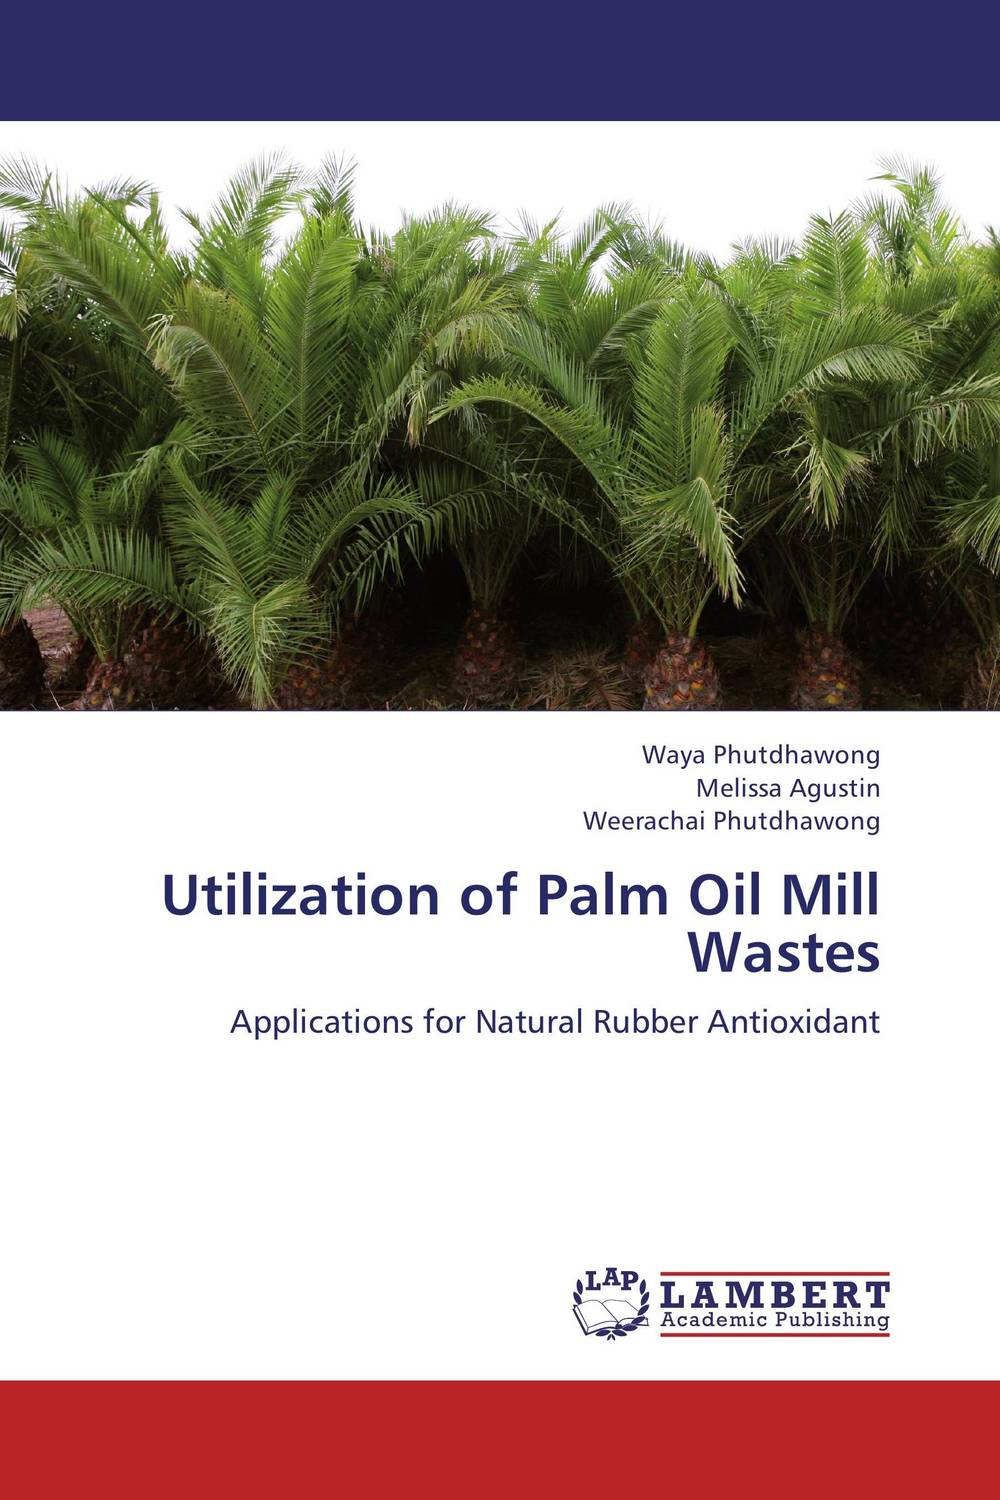 Utilization of Palm Oil Mill Wastes adding value to the citrus pulp by enzyme biotechnology production